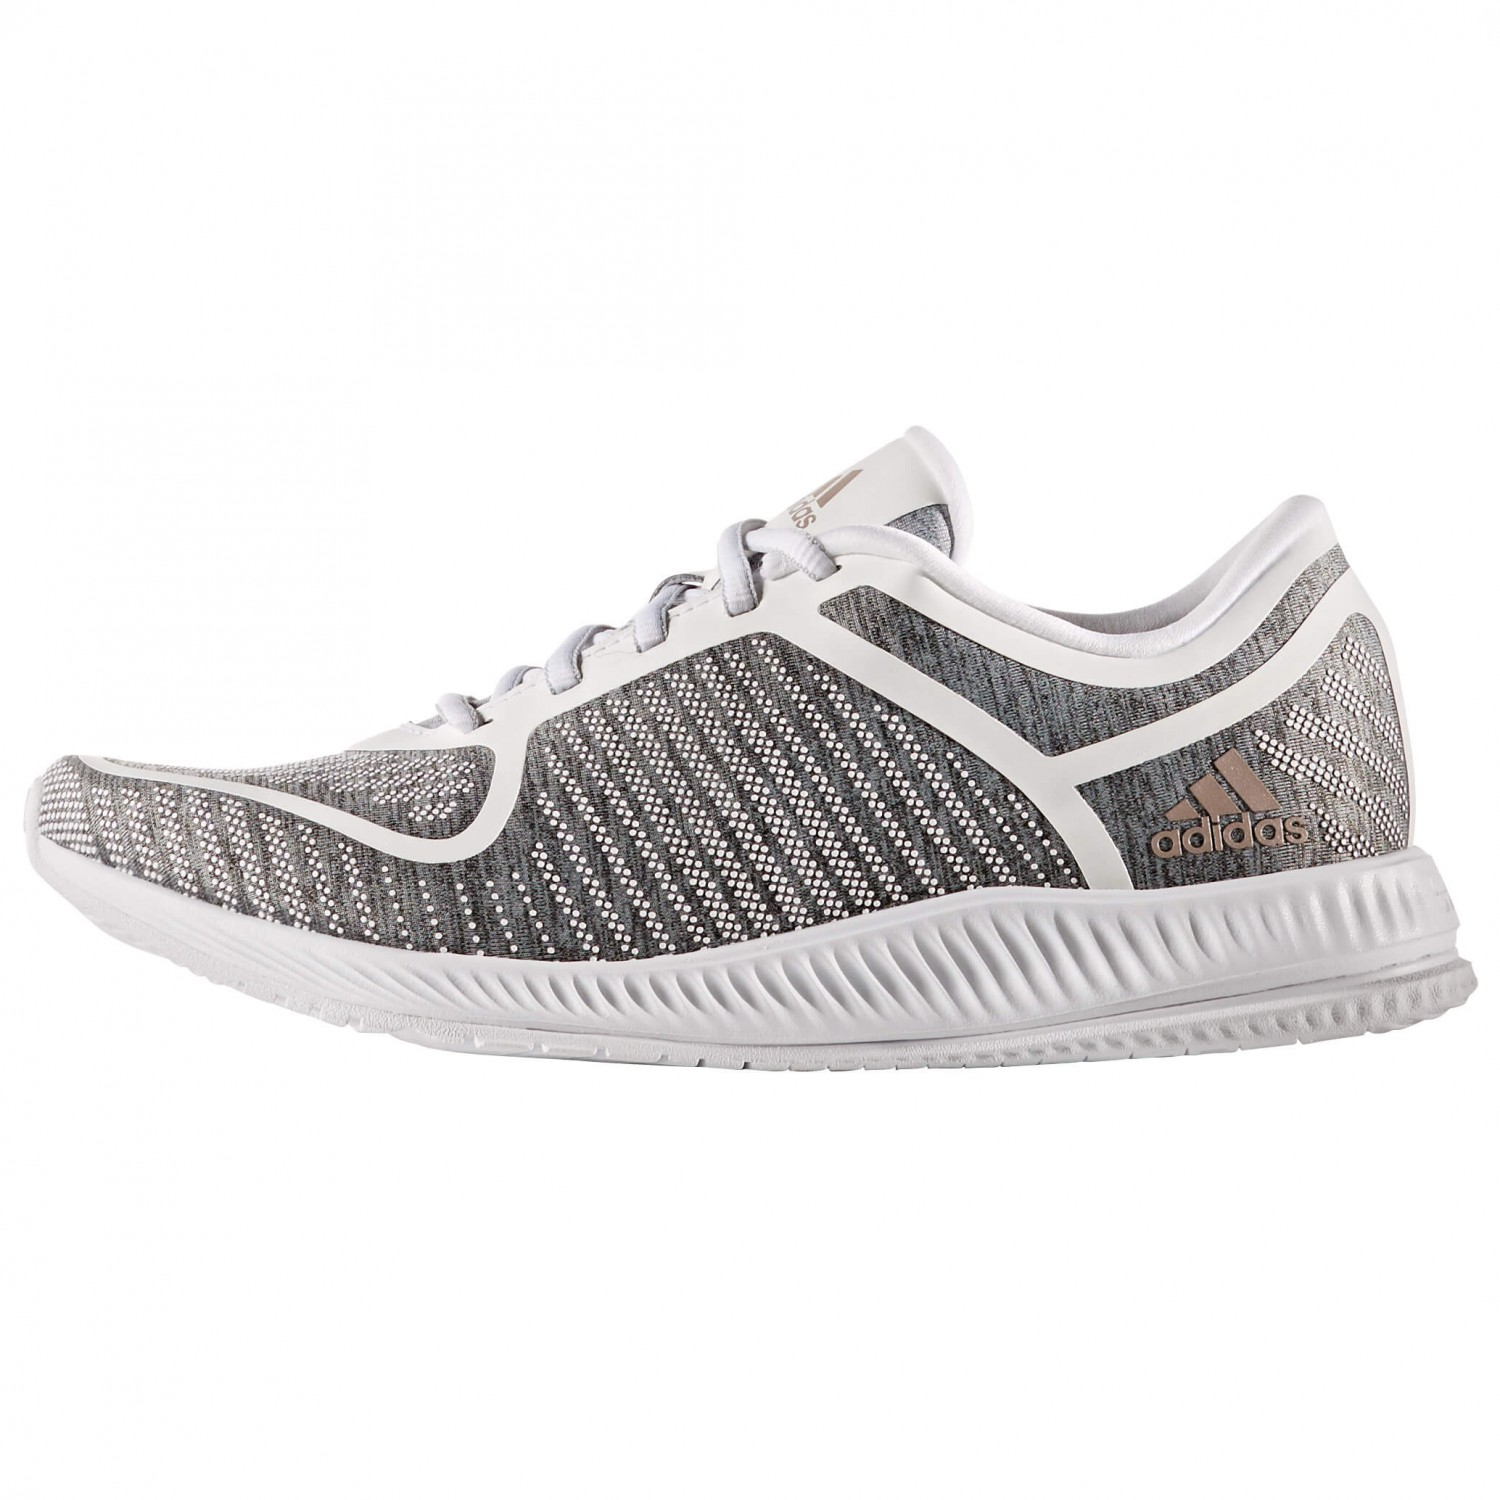 Adidas Athletics Bounce Fitness Shoes